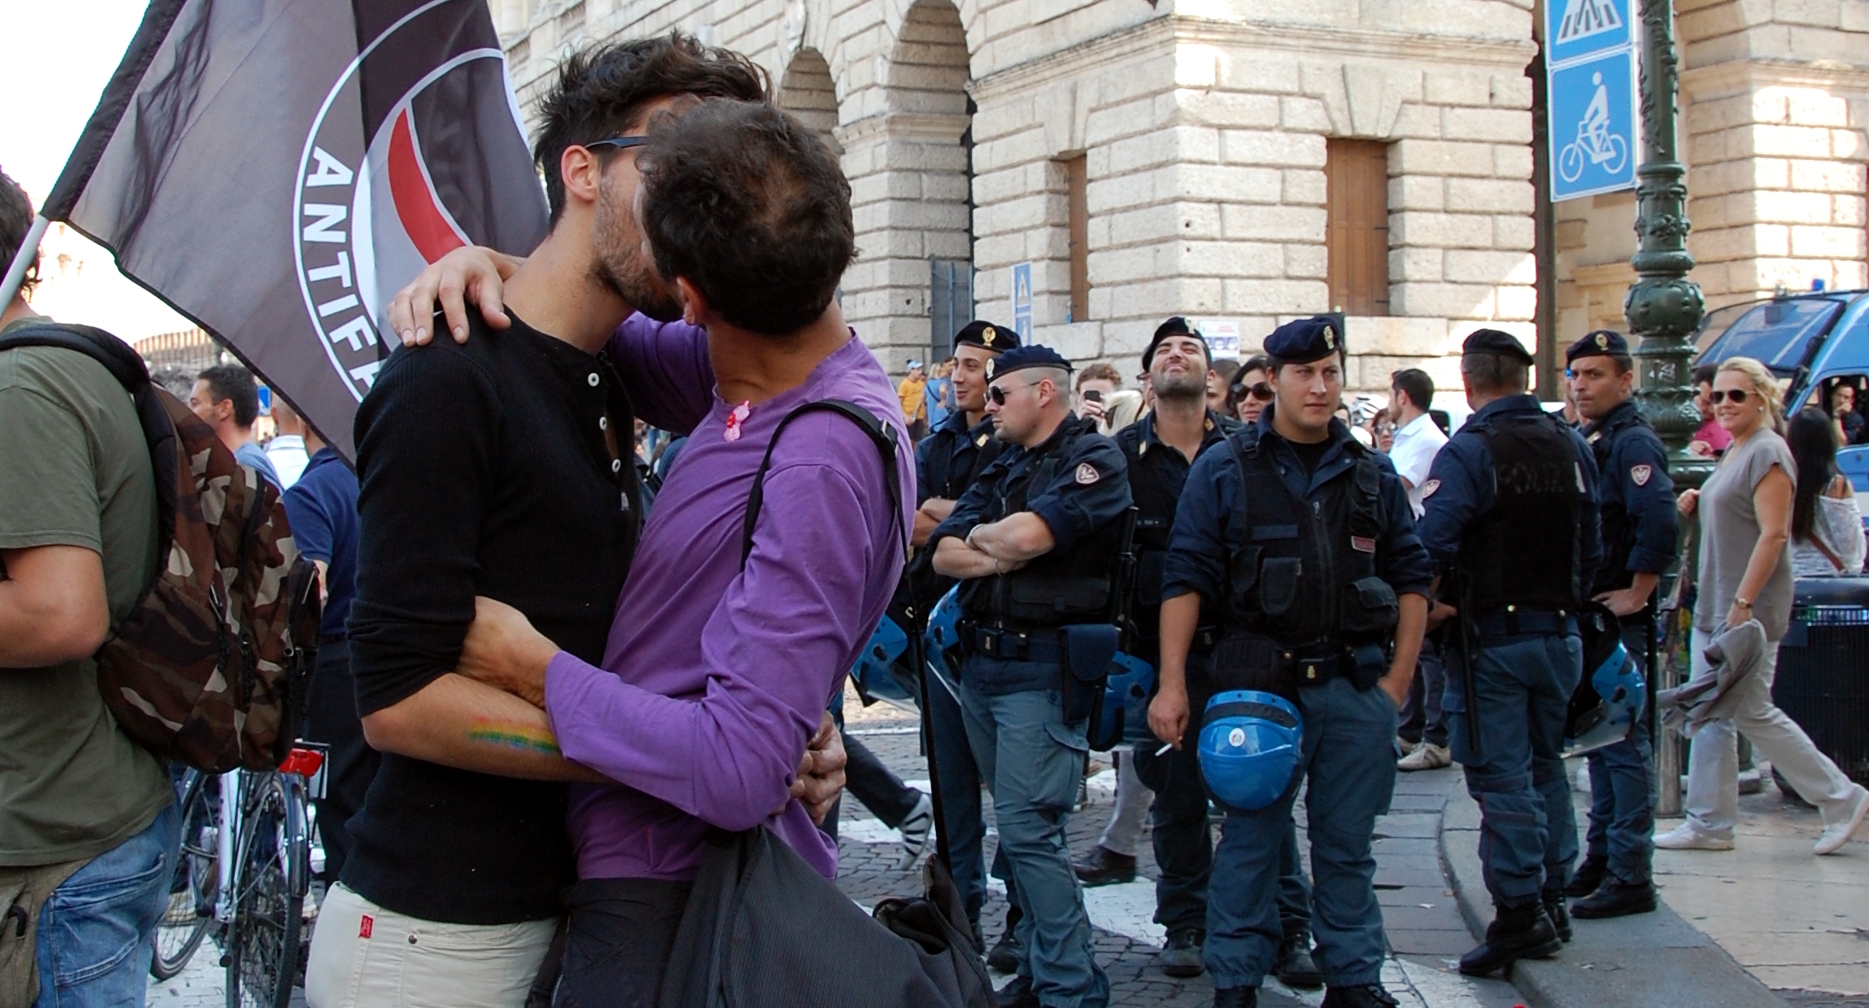 A queer couple embrace in front of an antifa flag at a protest, as police look on. Vienna, Italy 2013.